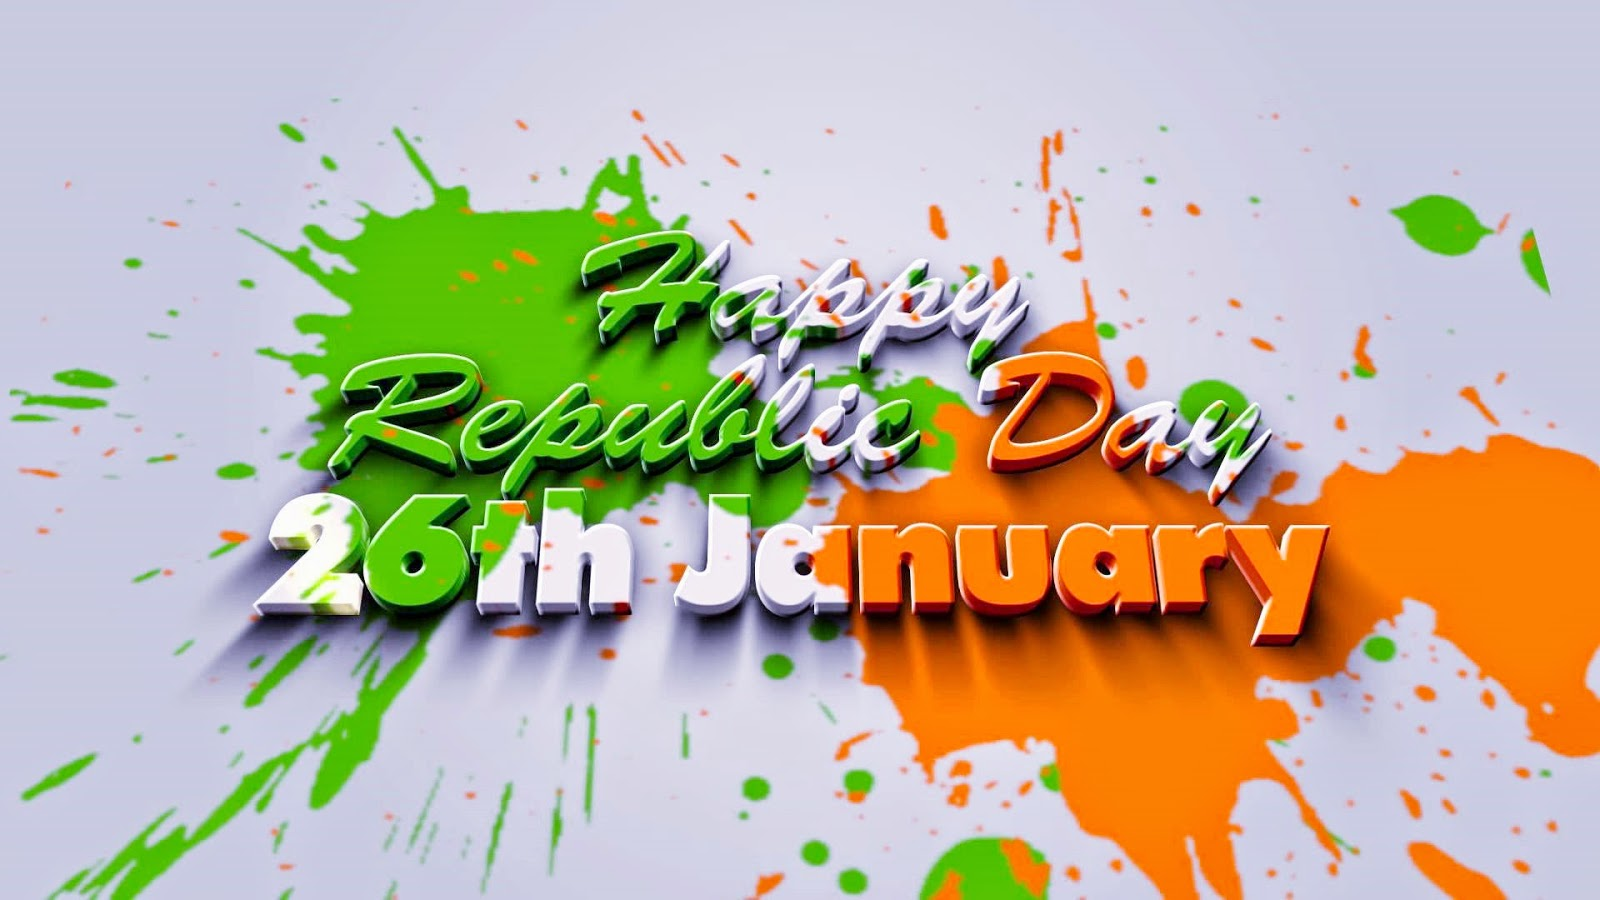 happy republic day 2015, happy republic day Speech, Speech on Republic Day, republic day speech